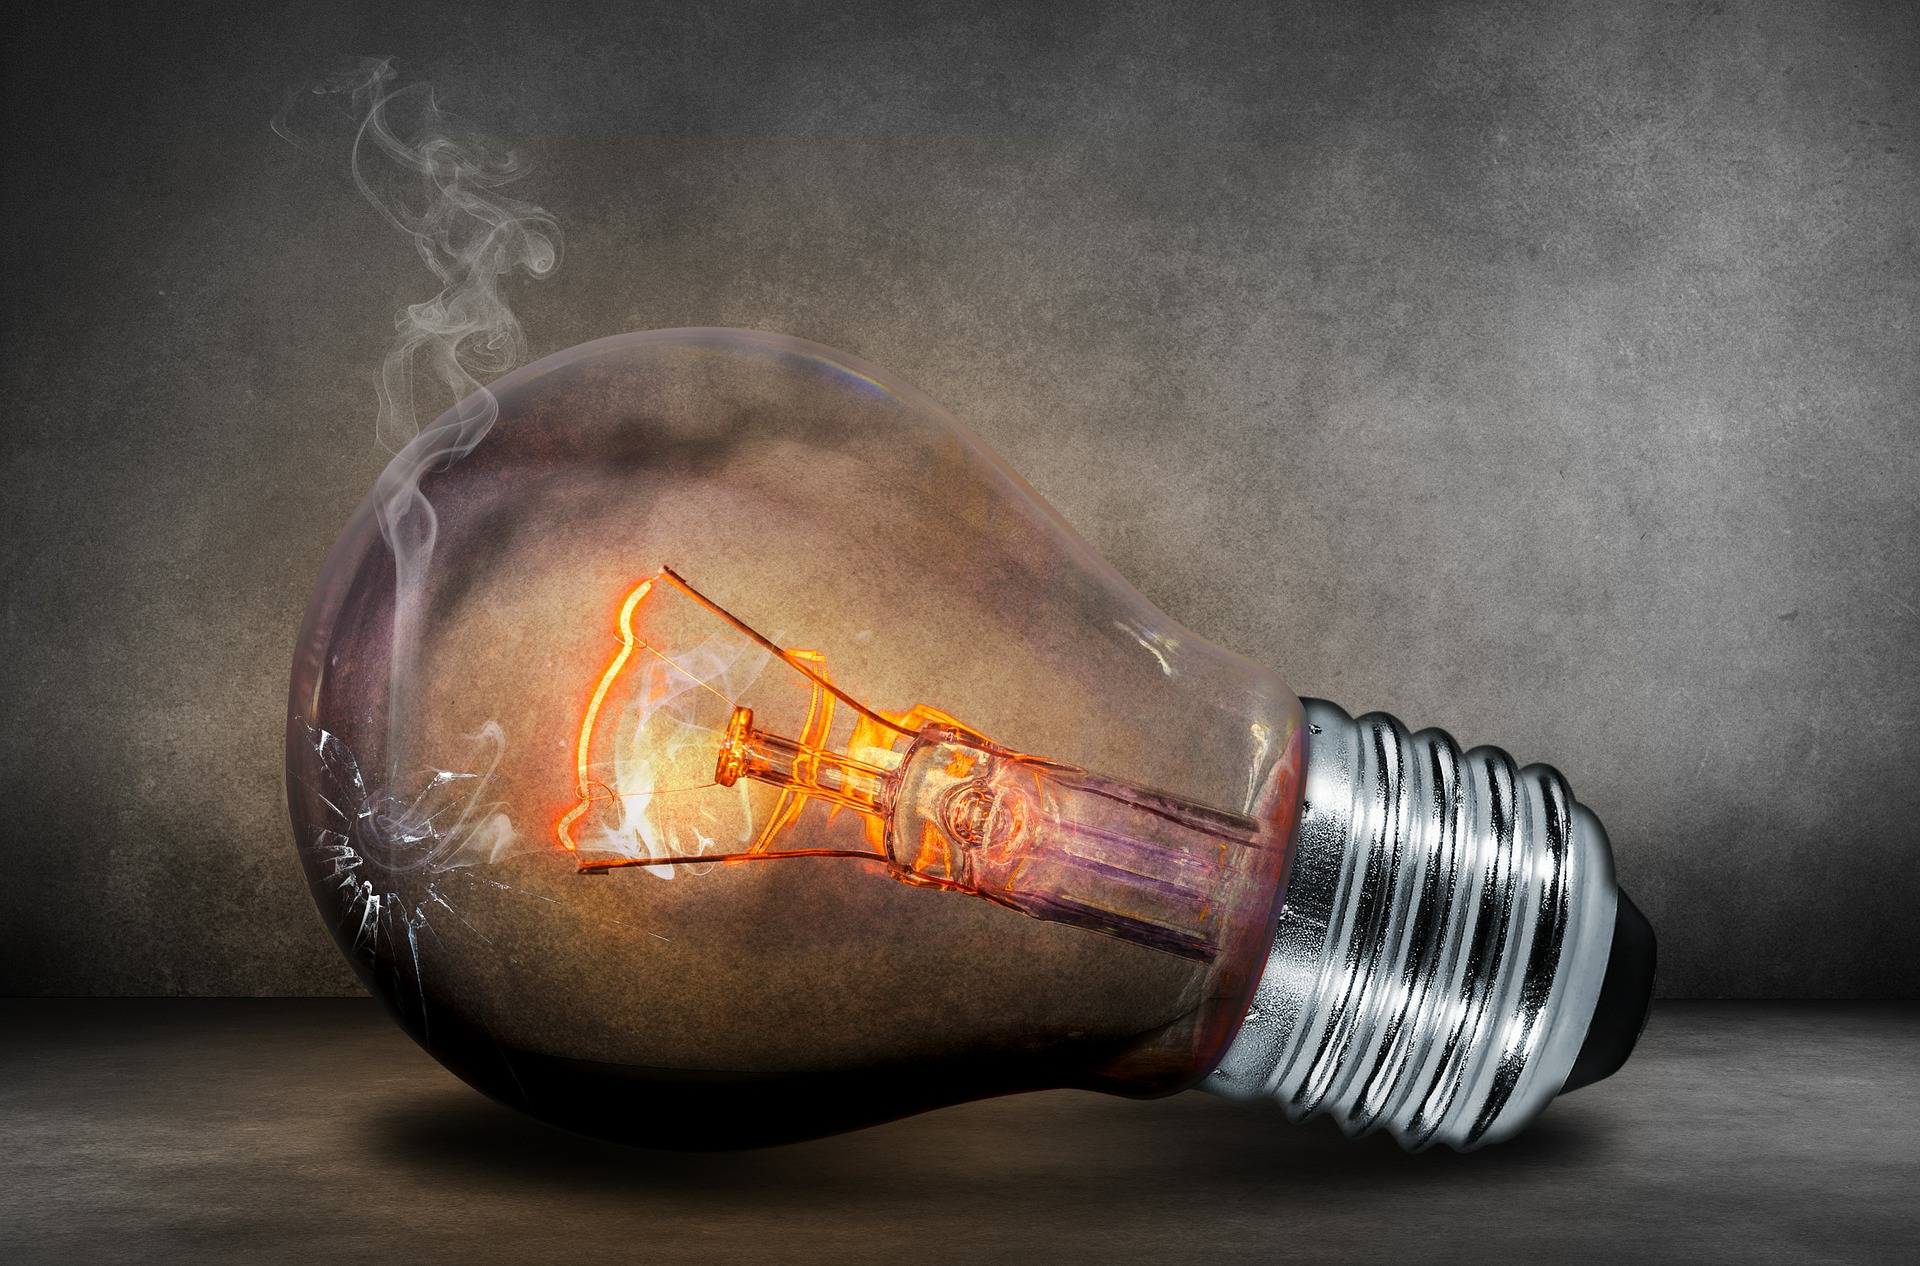 Don't Be Left In The Dark By Business Energy Theft